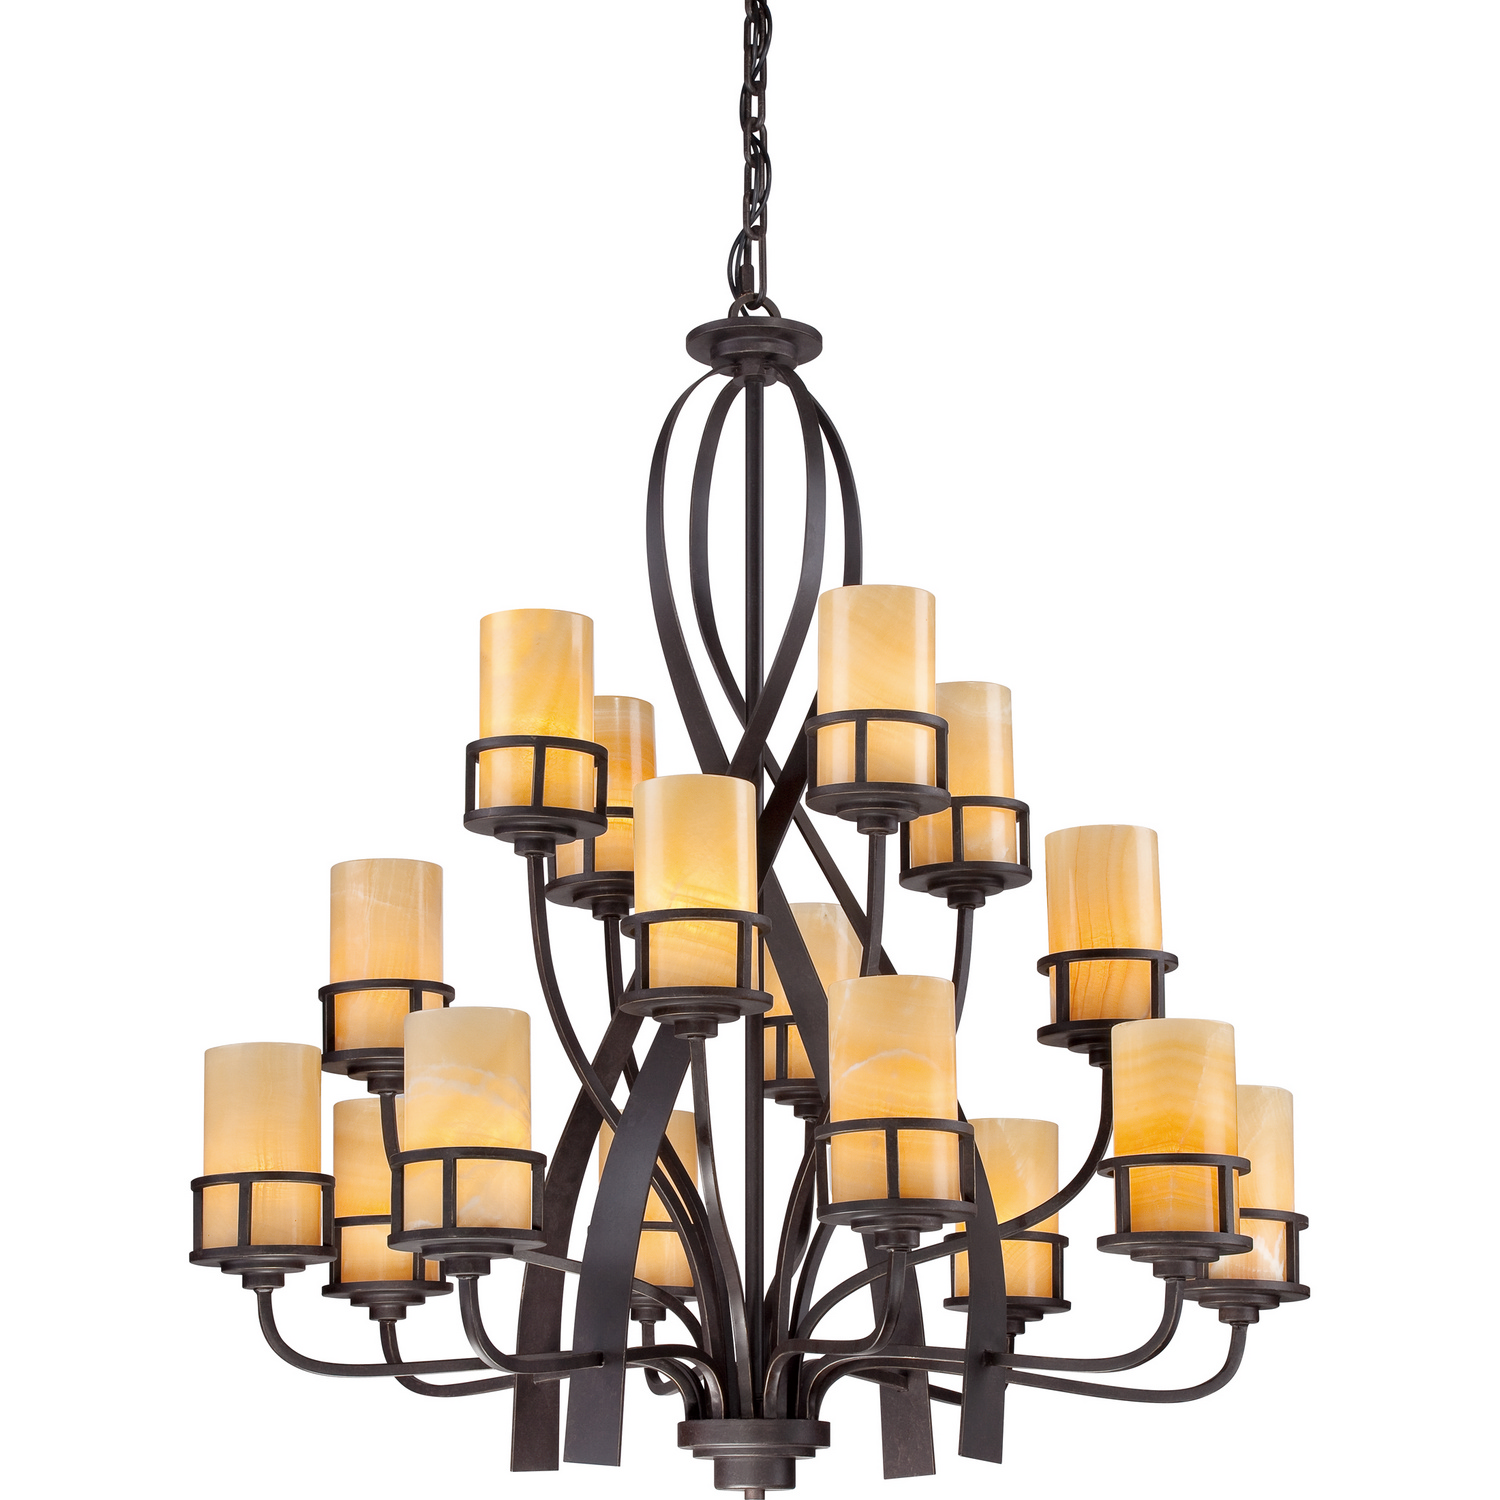 Hudson Valley Lighting Kyle: Ceiling Lights At Yale Appliance And